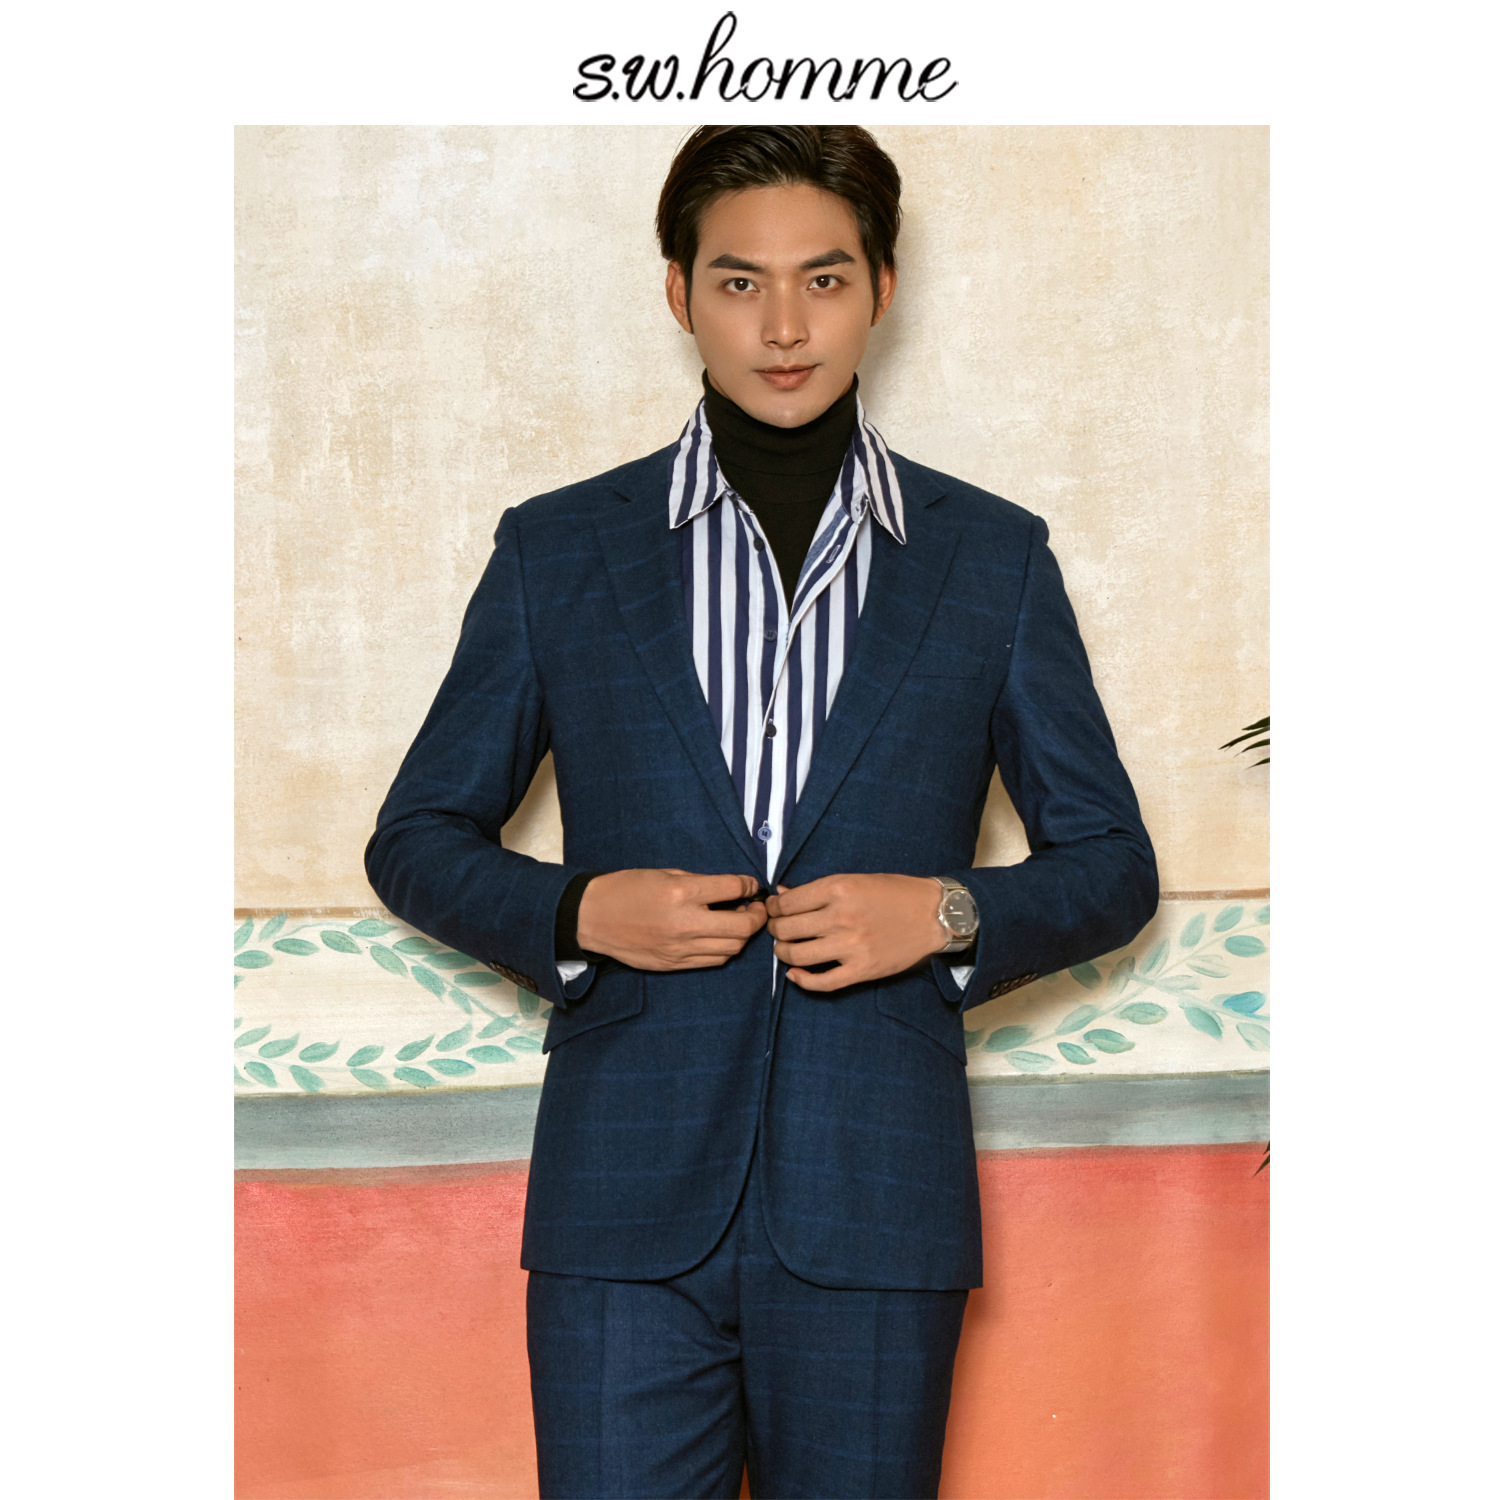 Open-Minded Oscn7 2019 3 Colour Plaid Korea Customize Suits Slim Fit Leisure Tailor Made Mens Suit S-wt-0913-40c S-wt-0913-40d S-wt-0913-40c To Rank First Among Similar Products Men's Clothing